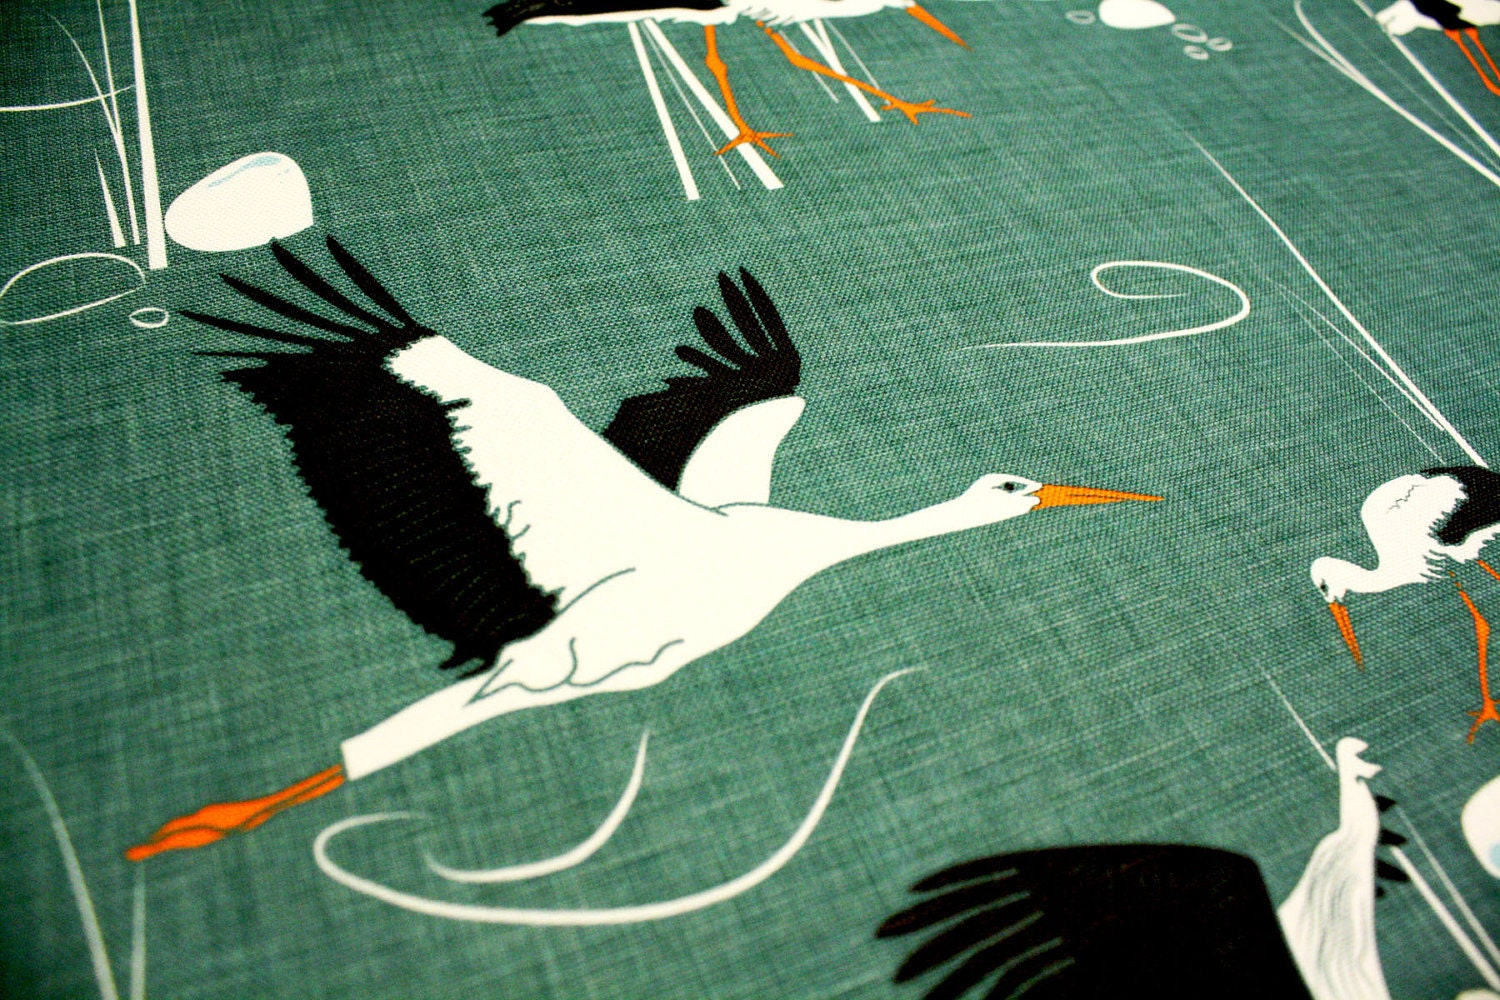 Emerald Upholstery Fabric With Birds Storks